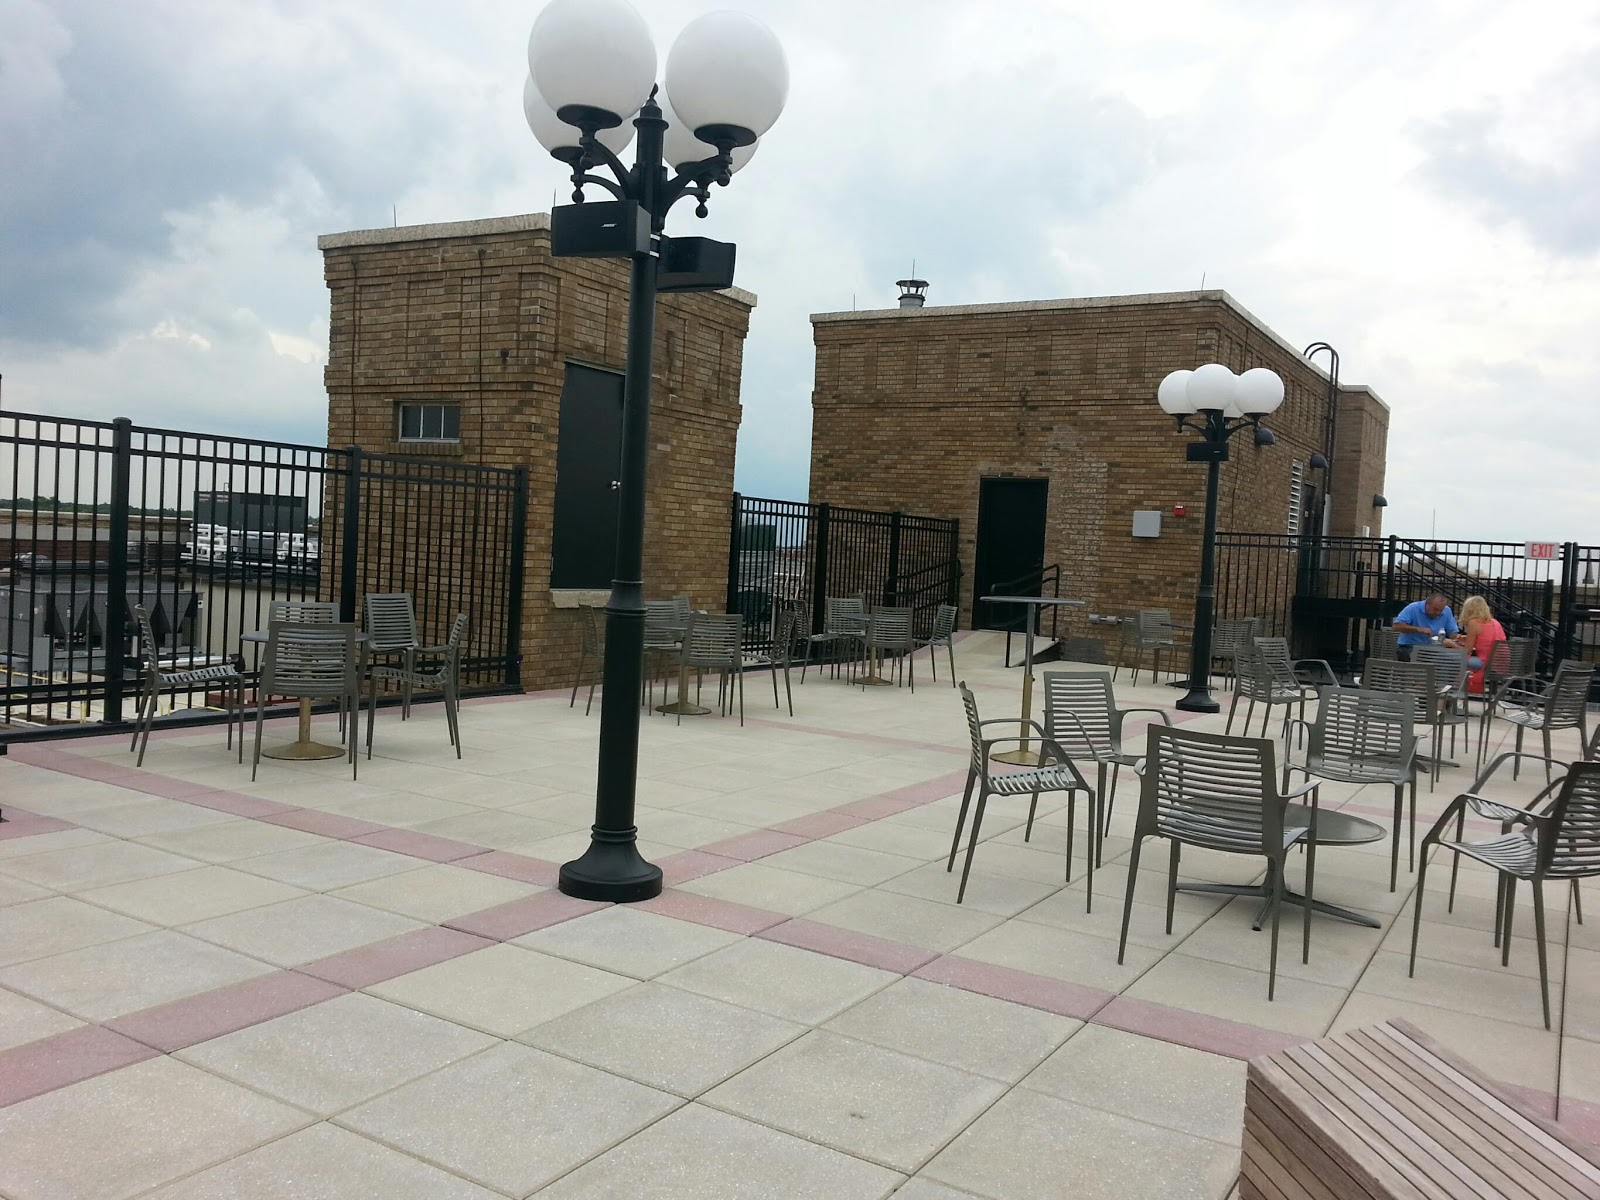 Embassy Theatre Rooftop Patio Open On Wednesday Evenings In Summer